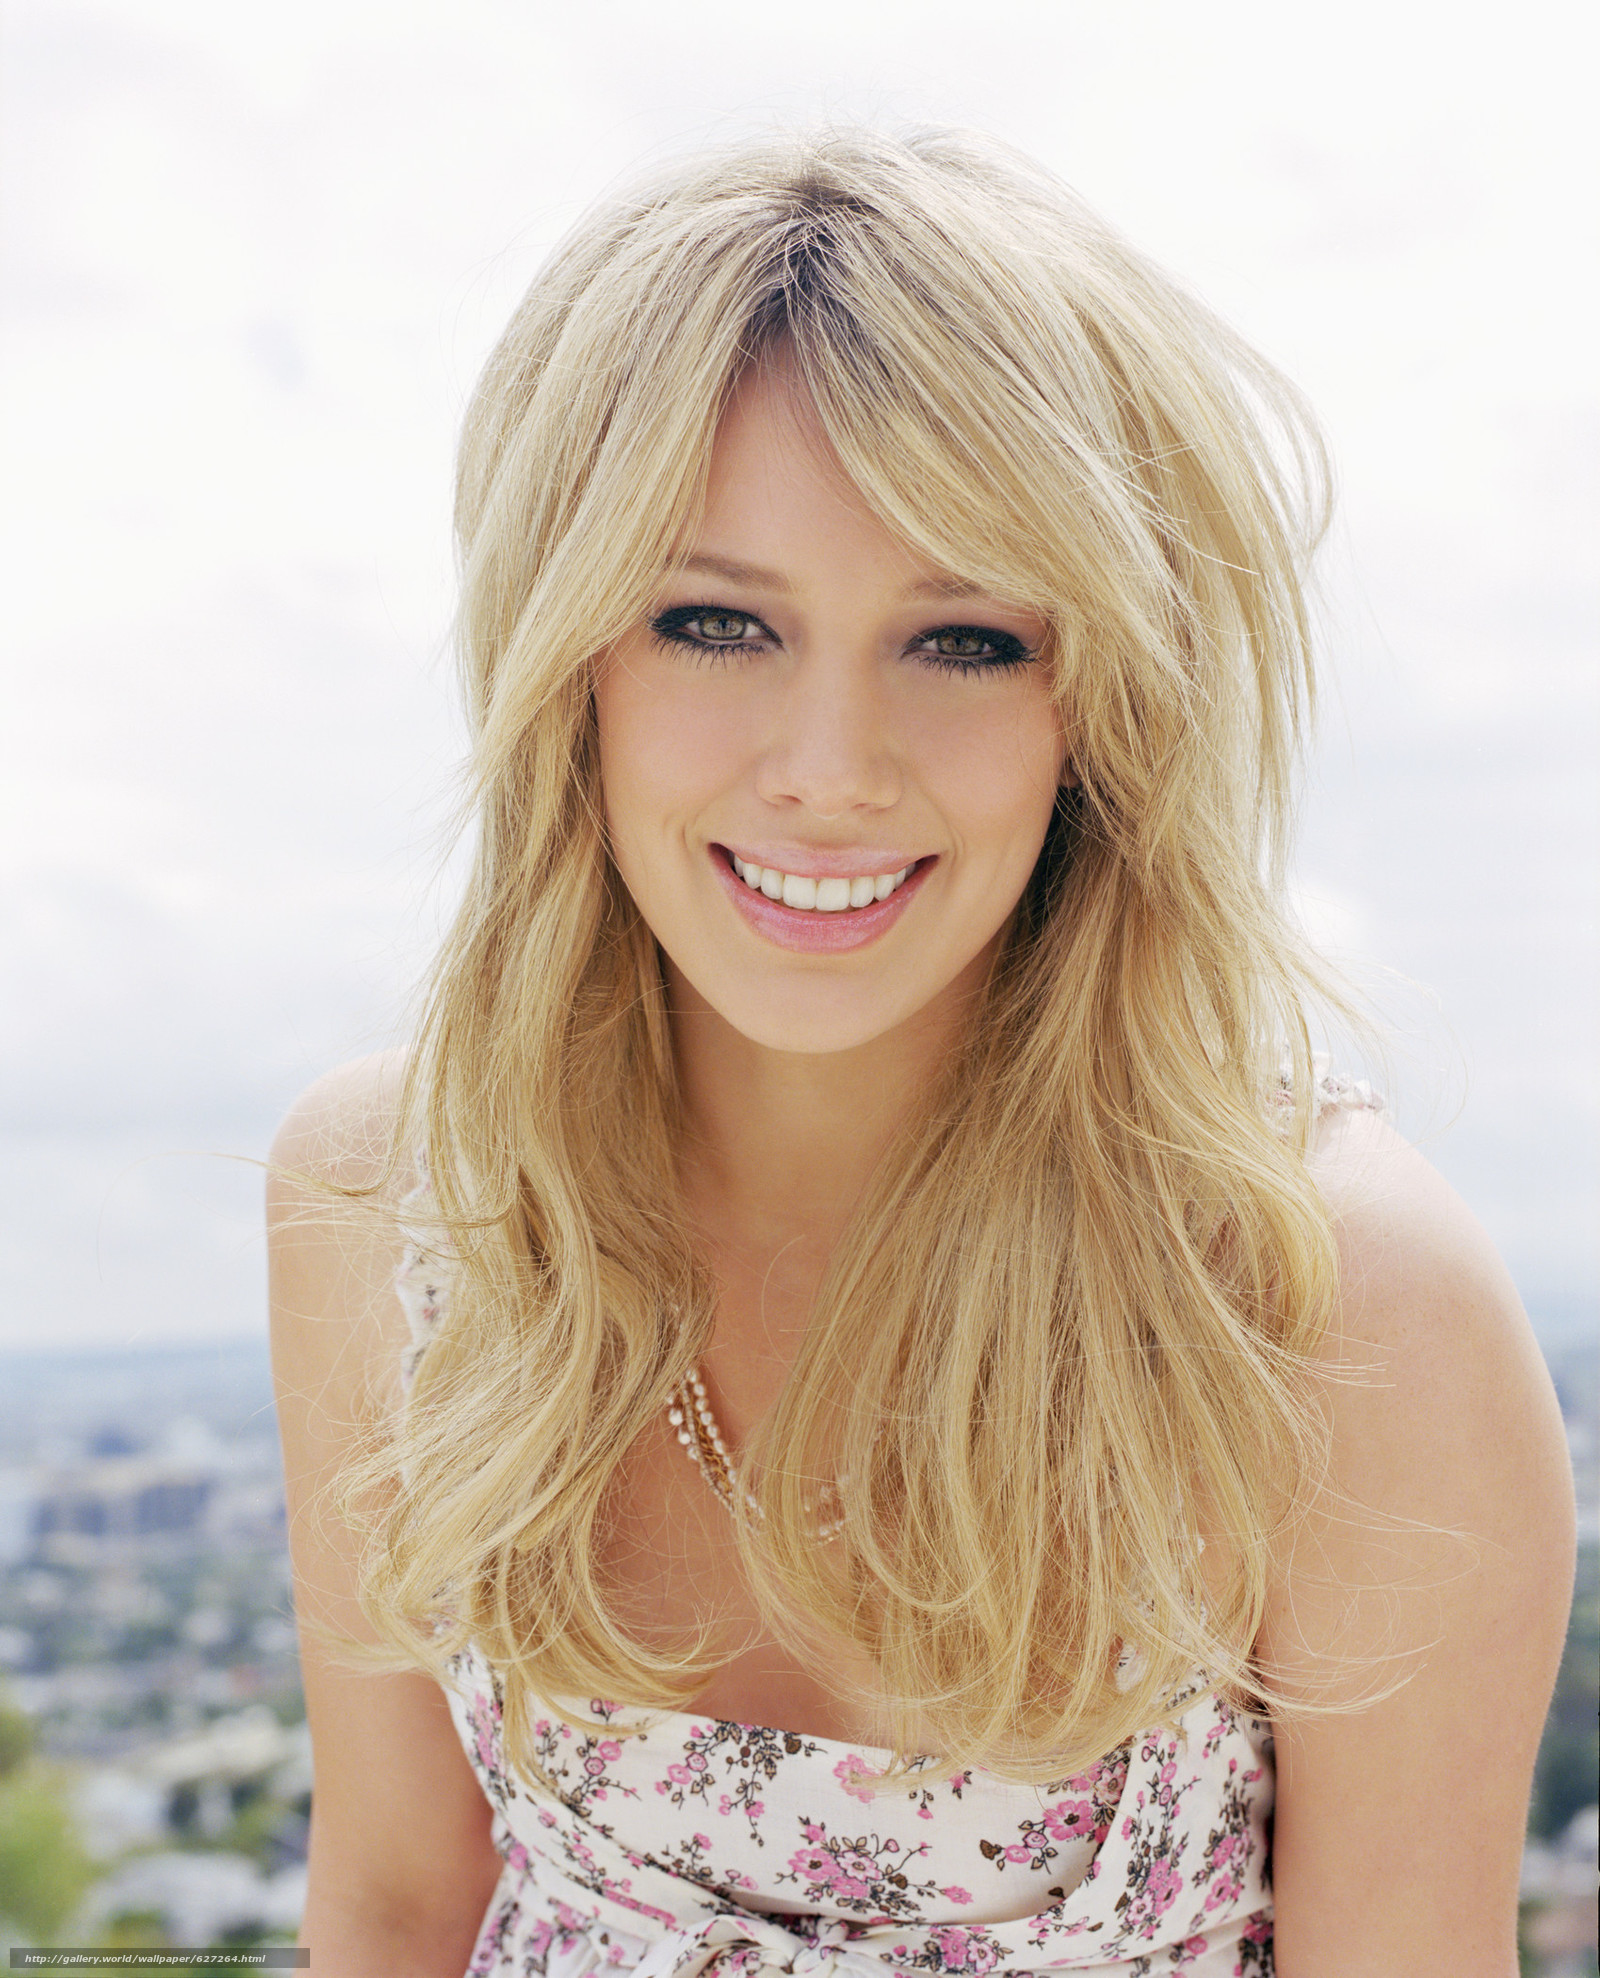 hilary duff, Hilary Erhard Duff, actress